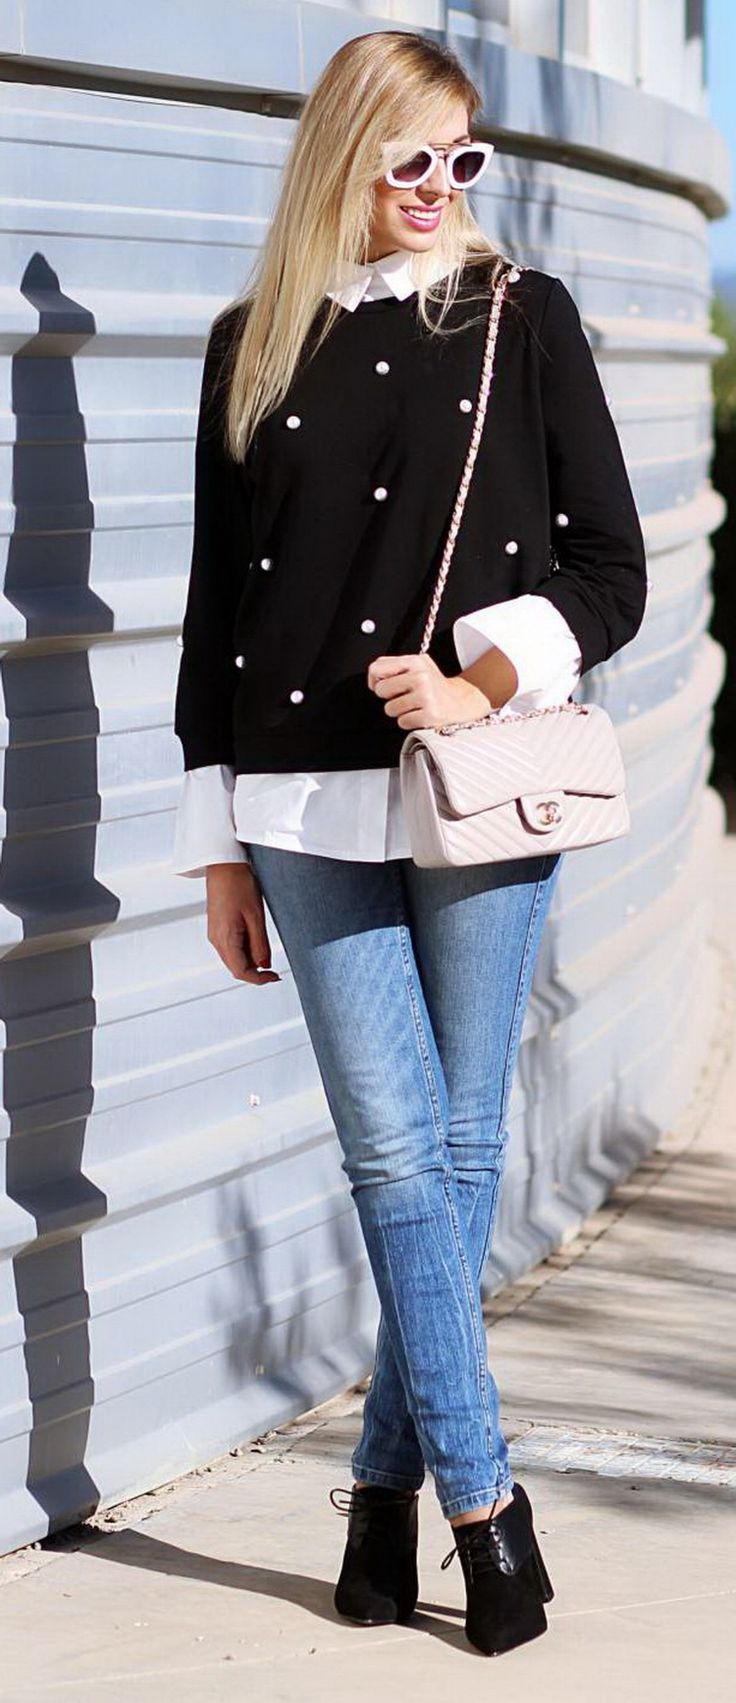 Jersey / Sweater: Buy here Jeans: Zara Boots / Ankle boots: Dángela, Buy here Bolso/Bag: Chanel